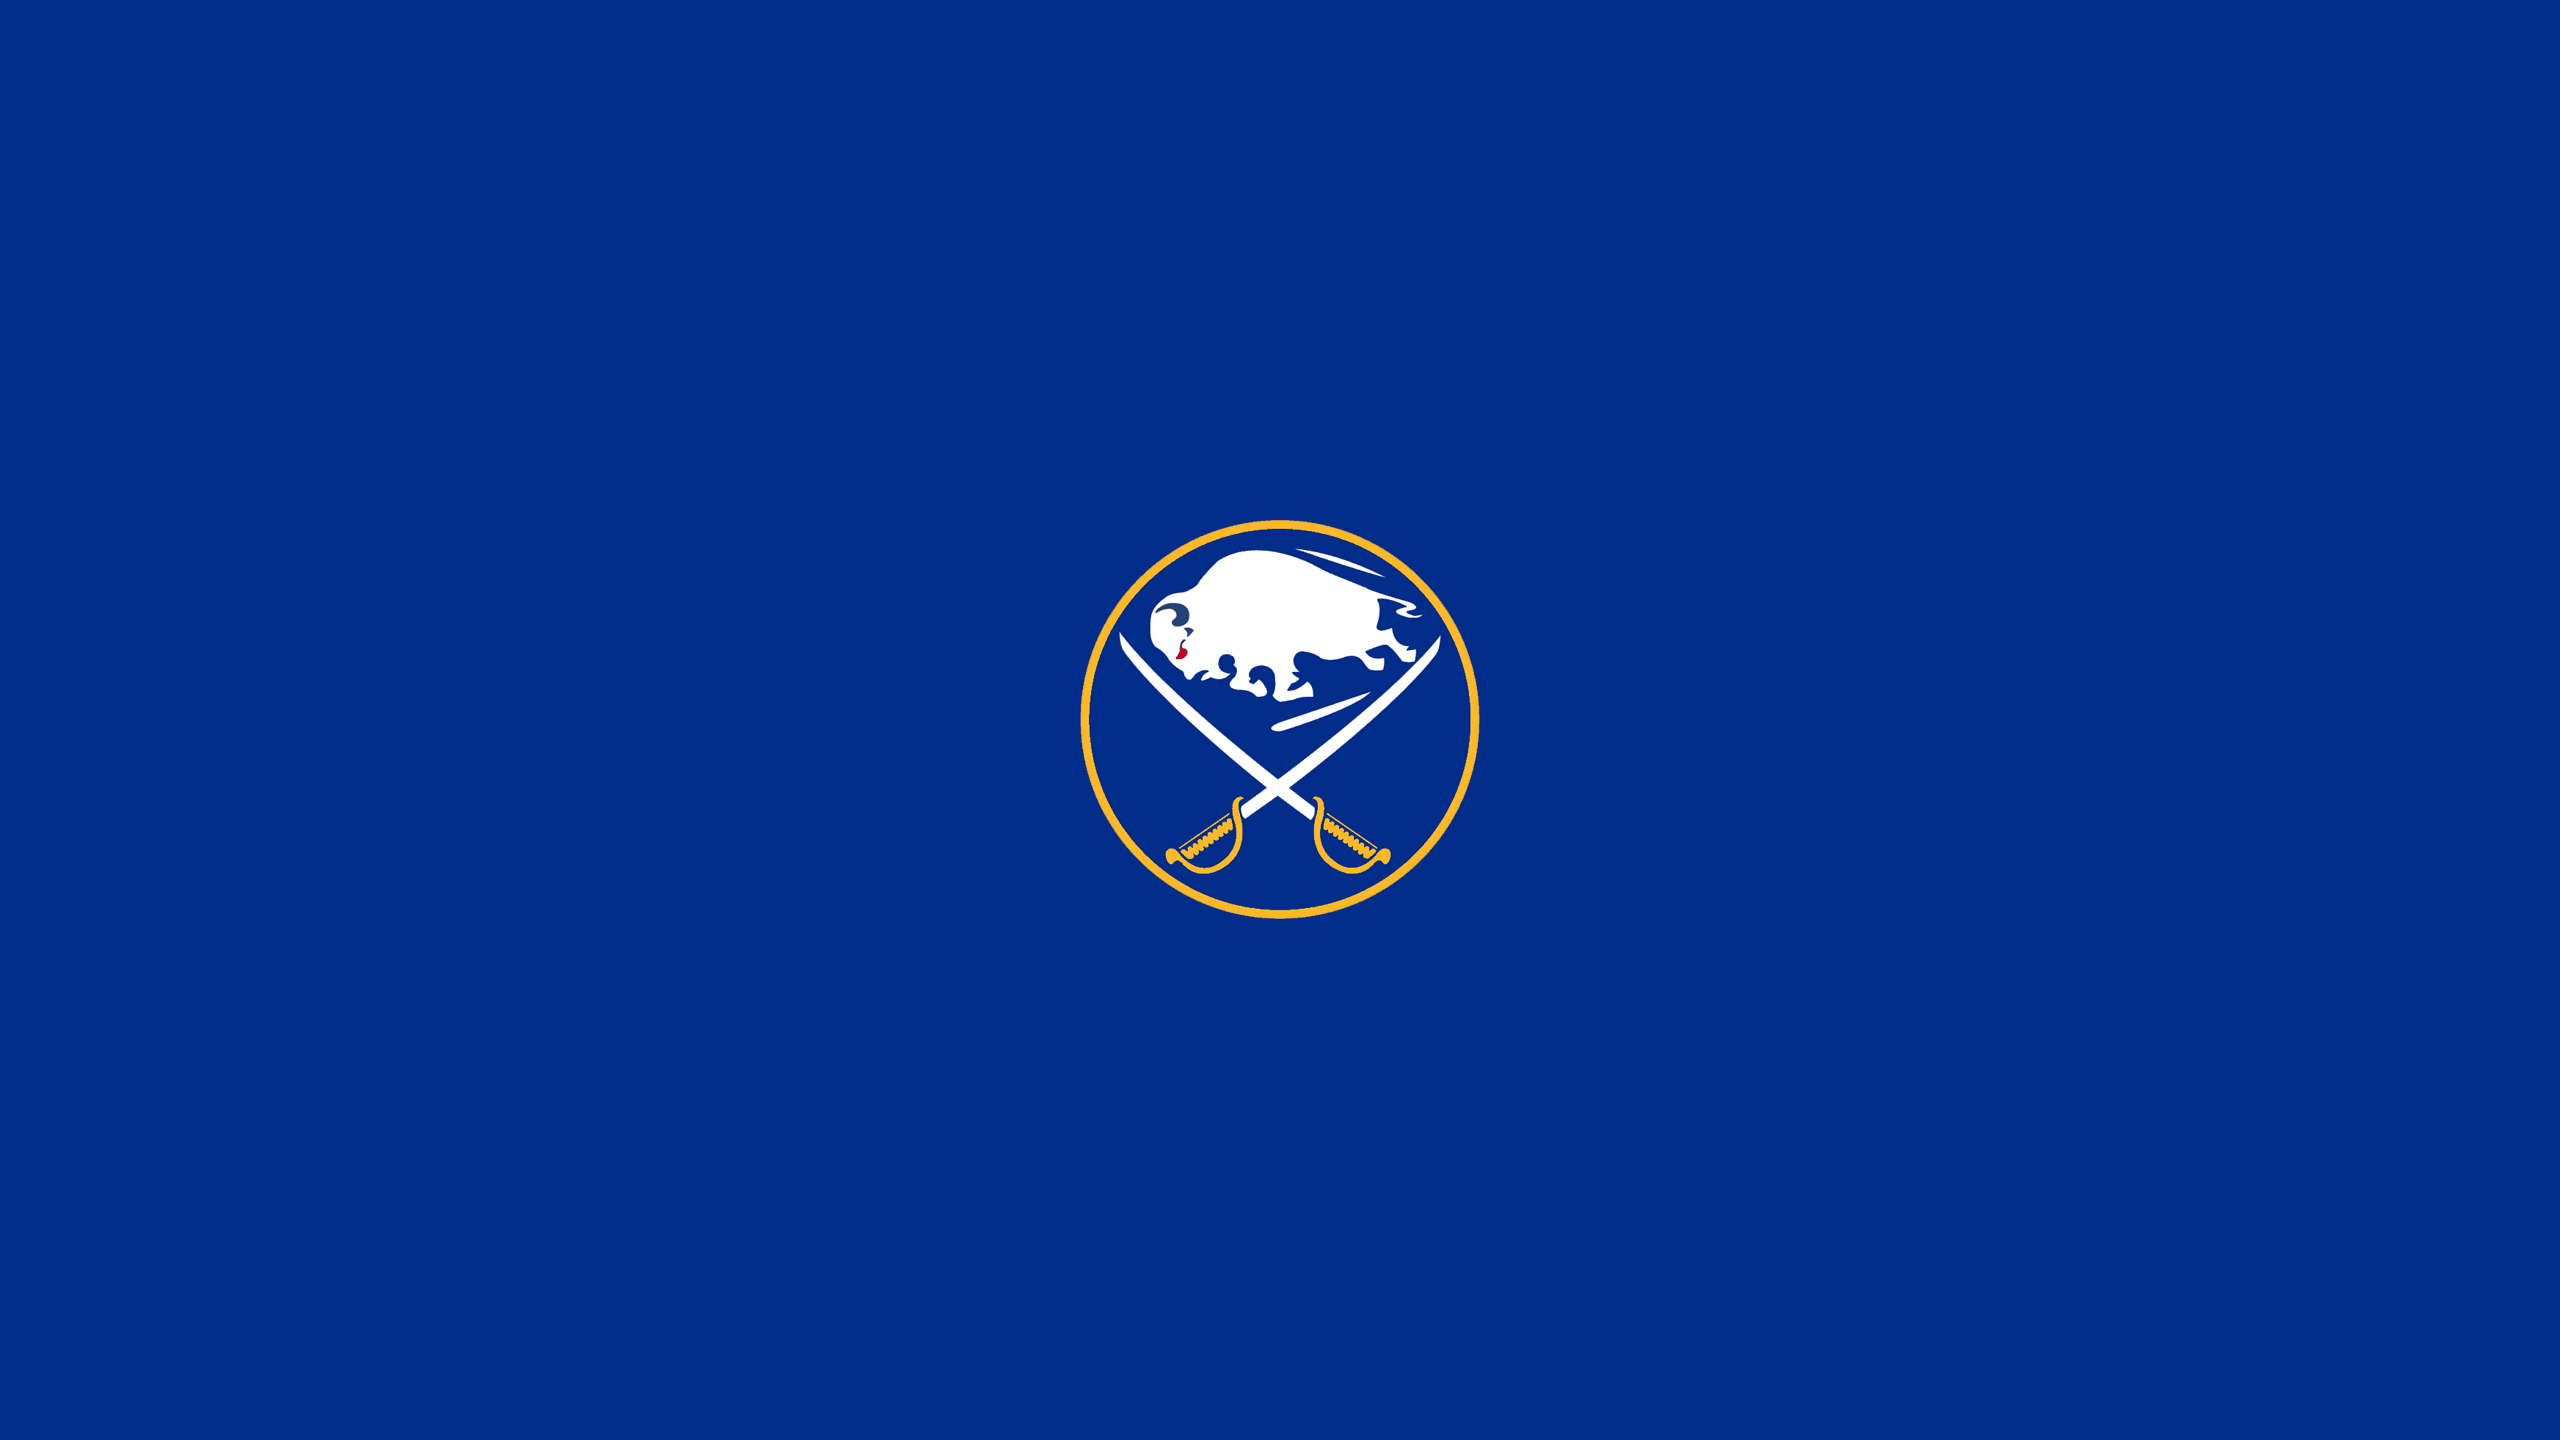 Buffalo Sabres (Old School)